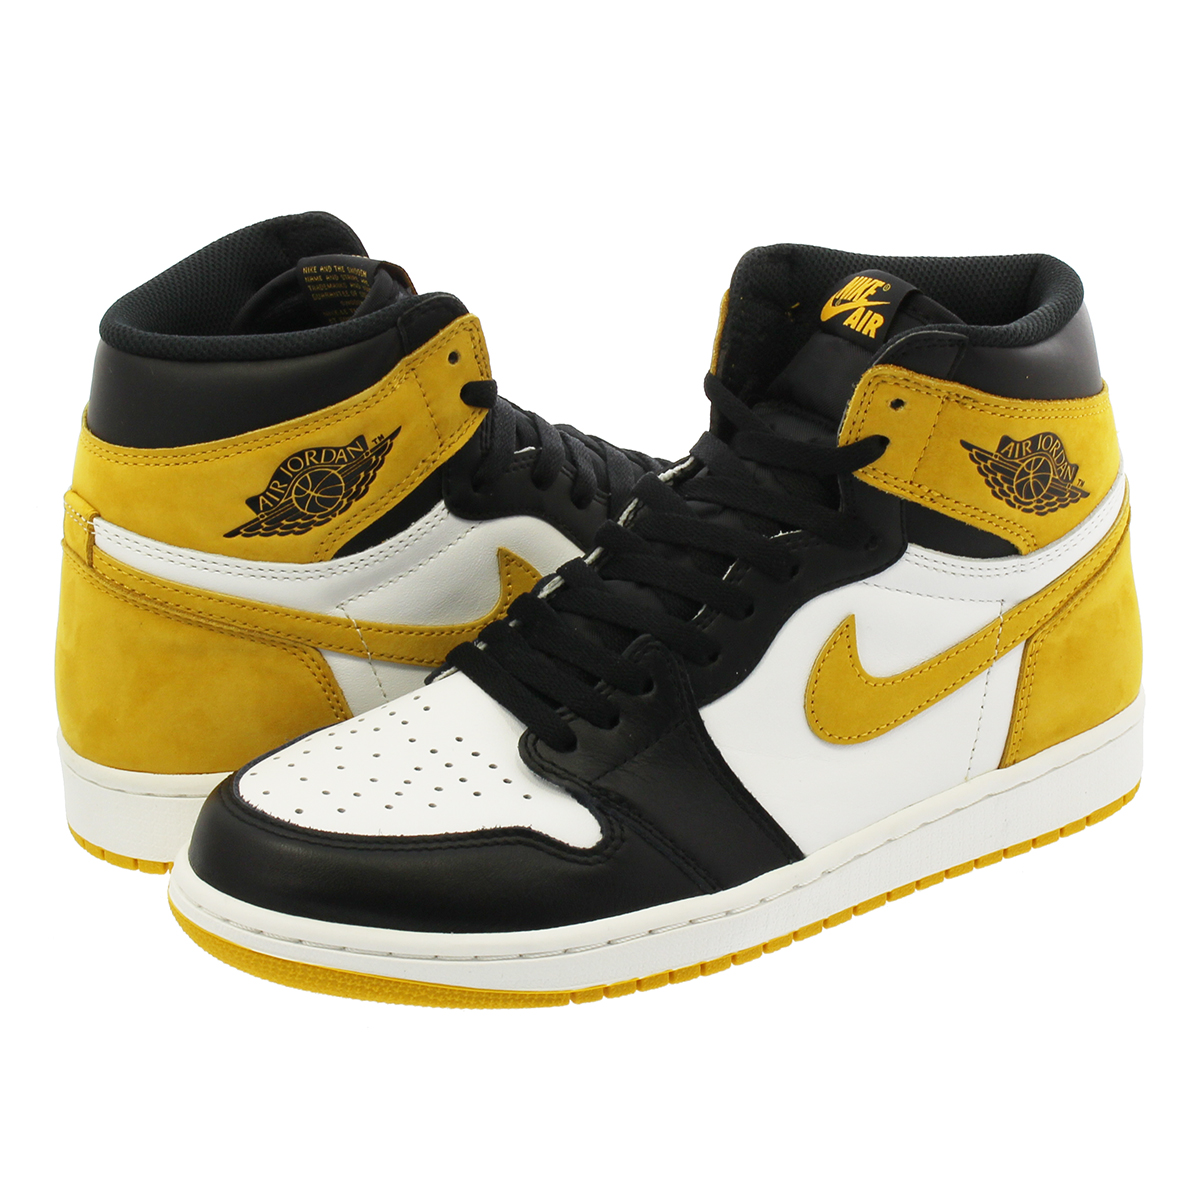 NIKE AIR JORDAN 1 RETRO HIGH OG Nike Air Jordan 1 nostalgic high OG  WHITE BLACK YELLOW OCHRE a774c54d7